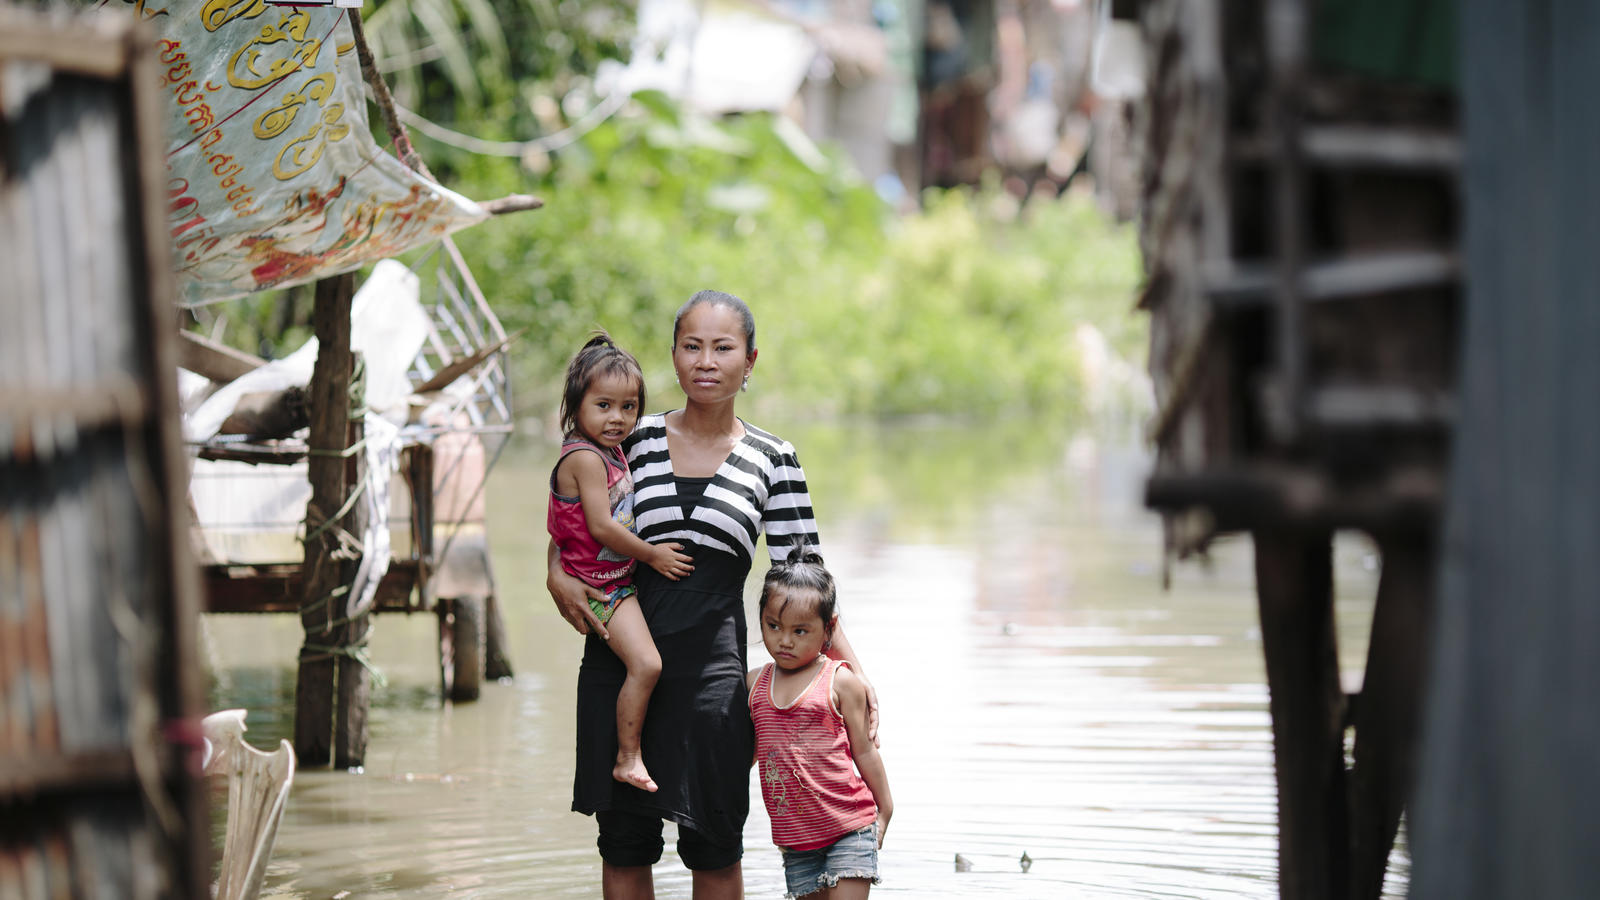 Chan Srey Nuch, 31, lives with her two young daughters  in the Chong Kaosou community, Siem Reap, Cambodia. Srey Nuch fears that her children could drown in filthy flood water when she is out working.